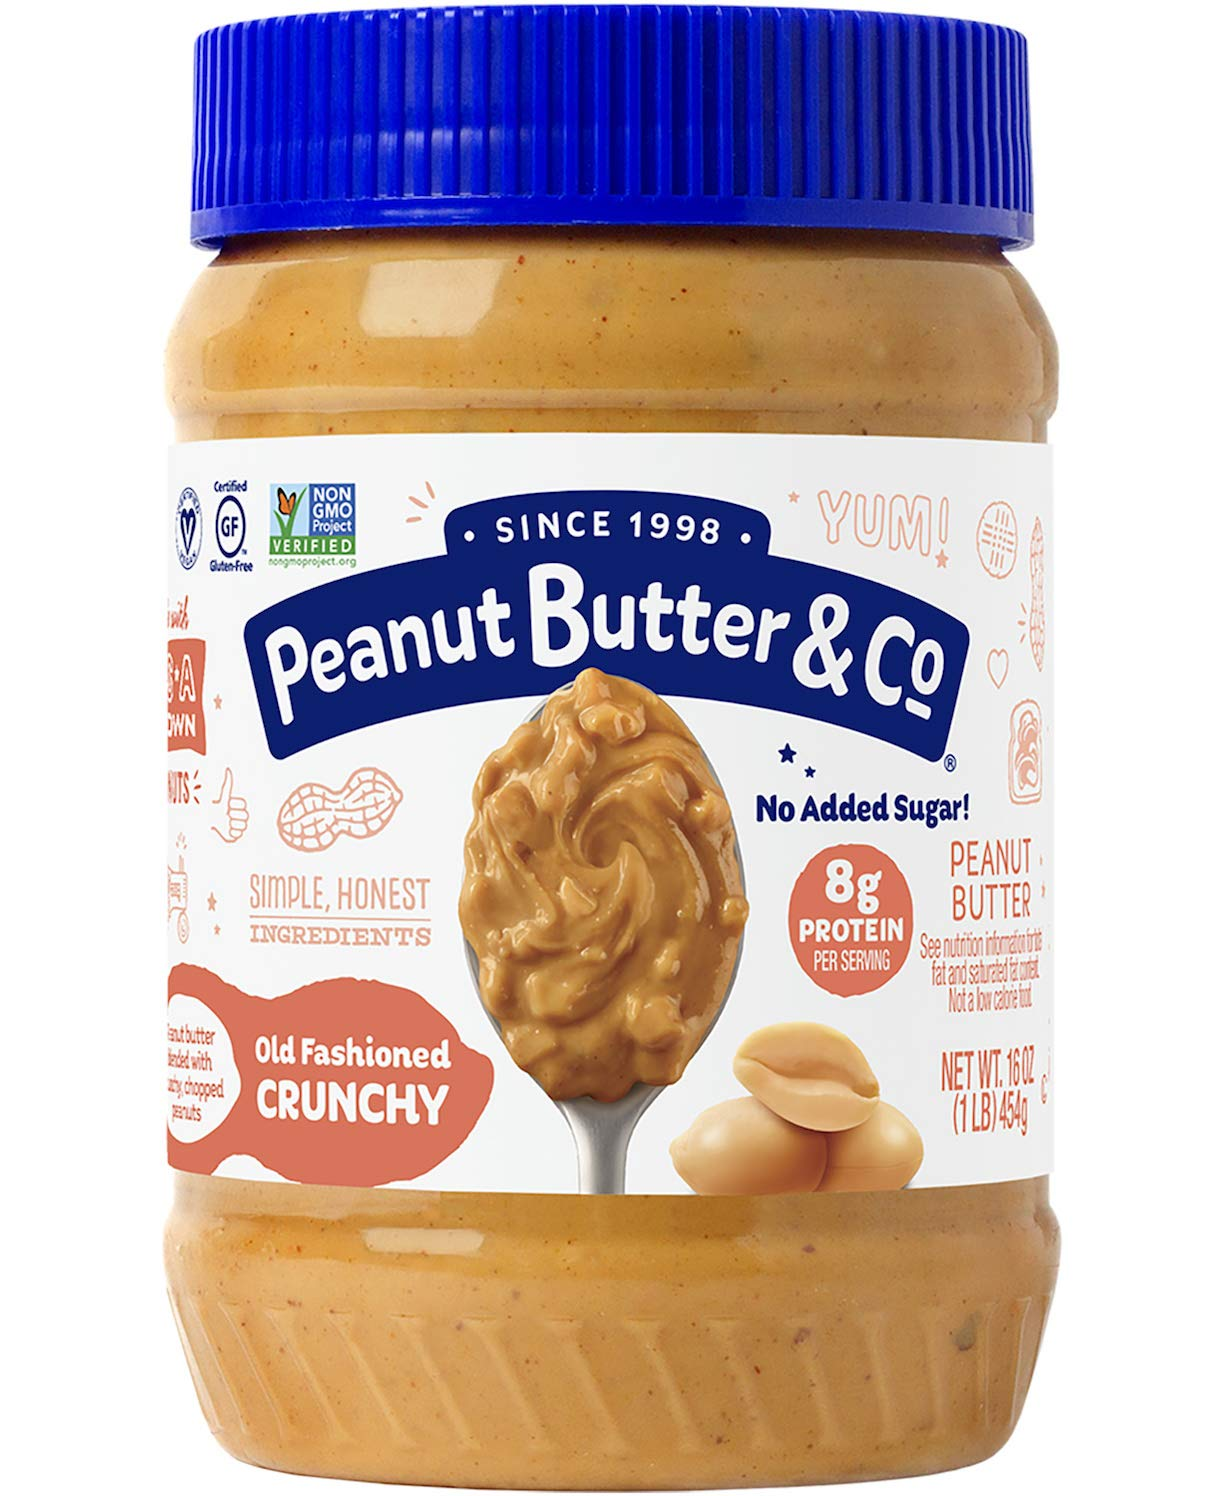 Peanut Butter & Co. Old Fashioned Crunchy Peanut Butter, Non-GMO, Gluten Free, Vegan, No Sugar Added, 16 Ounce (Pack of 1)